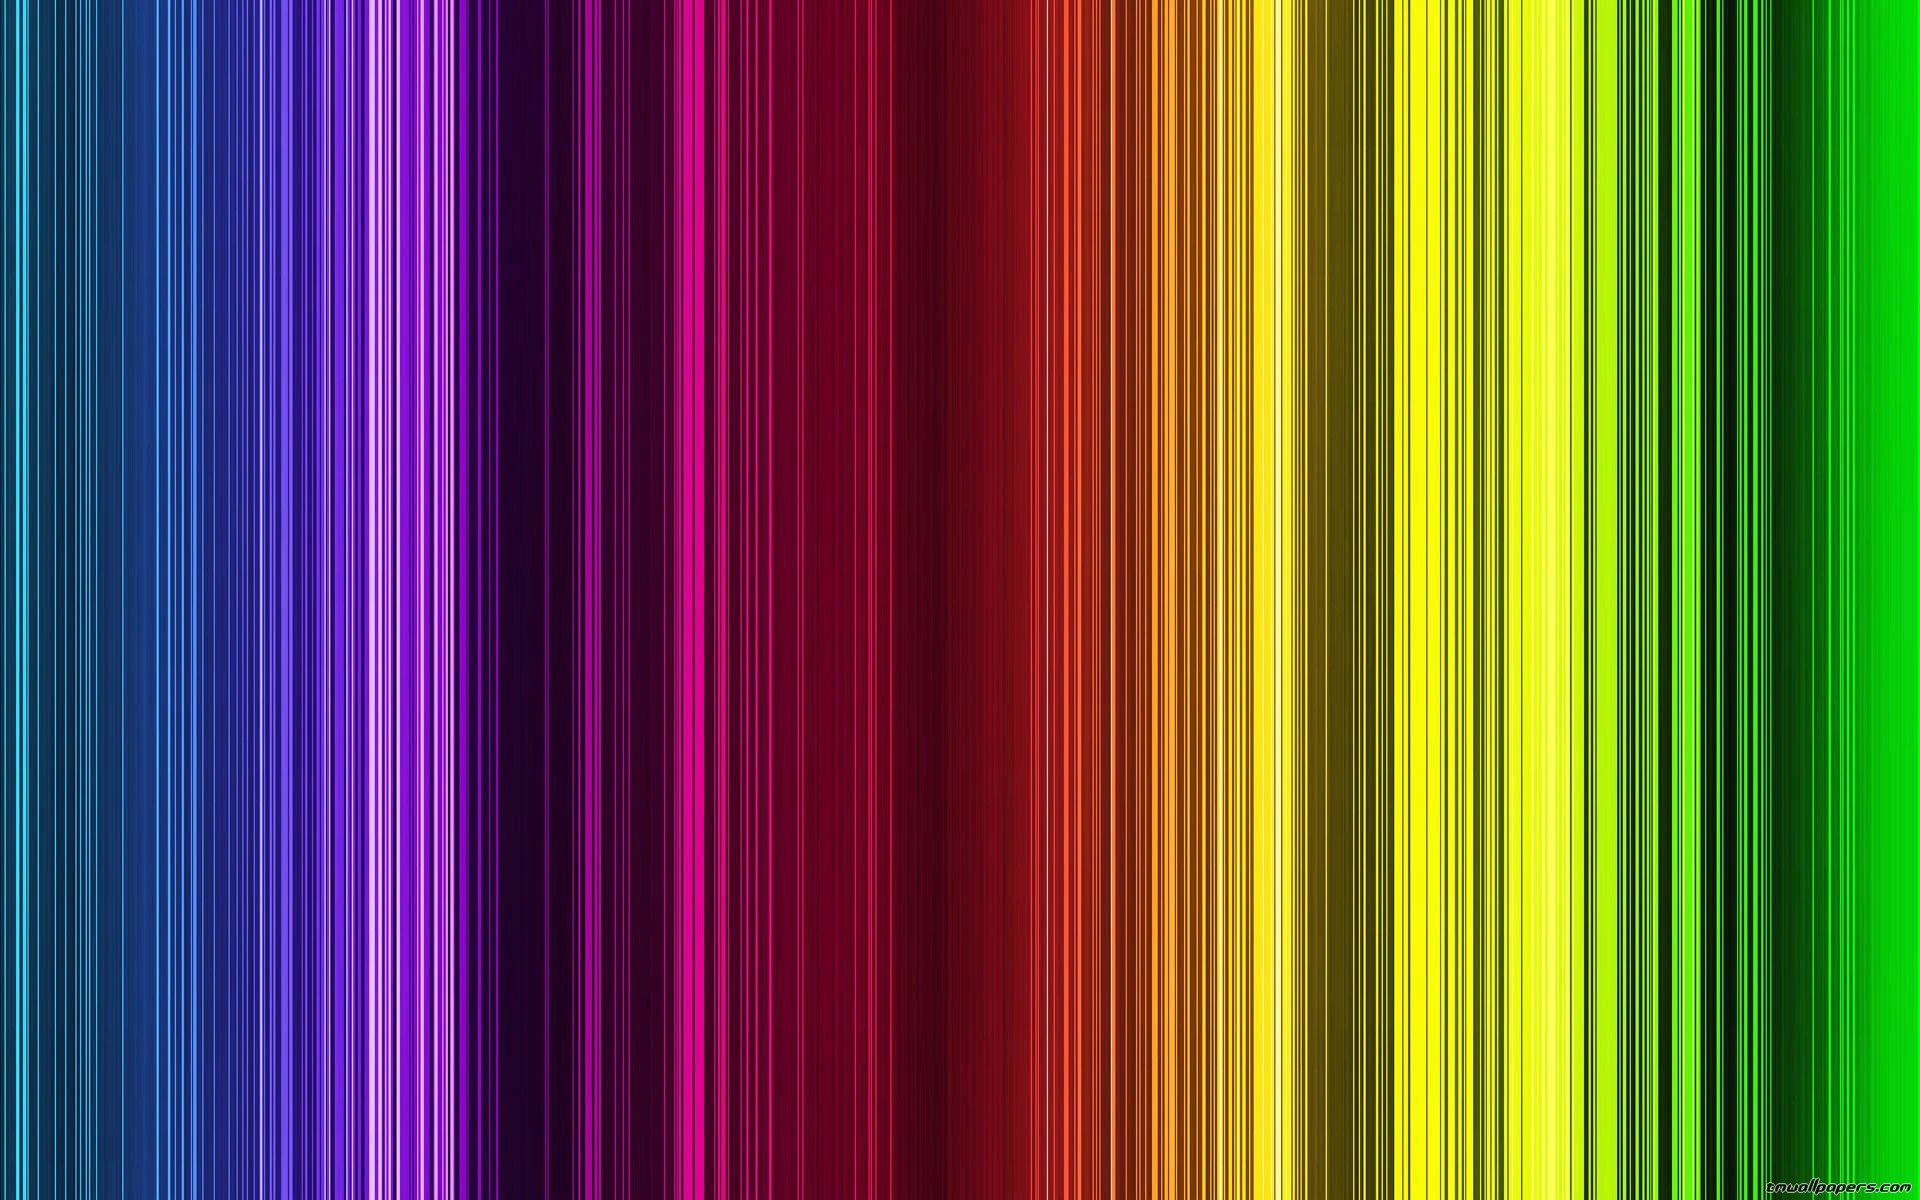 Vertical Line Definition In Art : Vertical hd wallpapers wallpapersafari